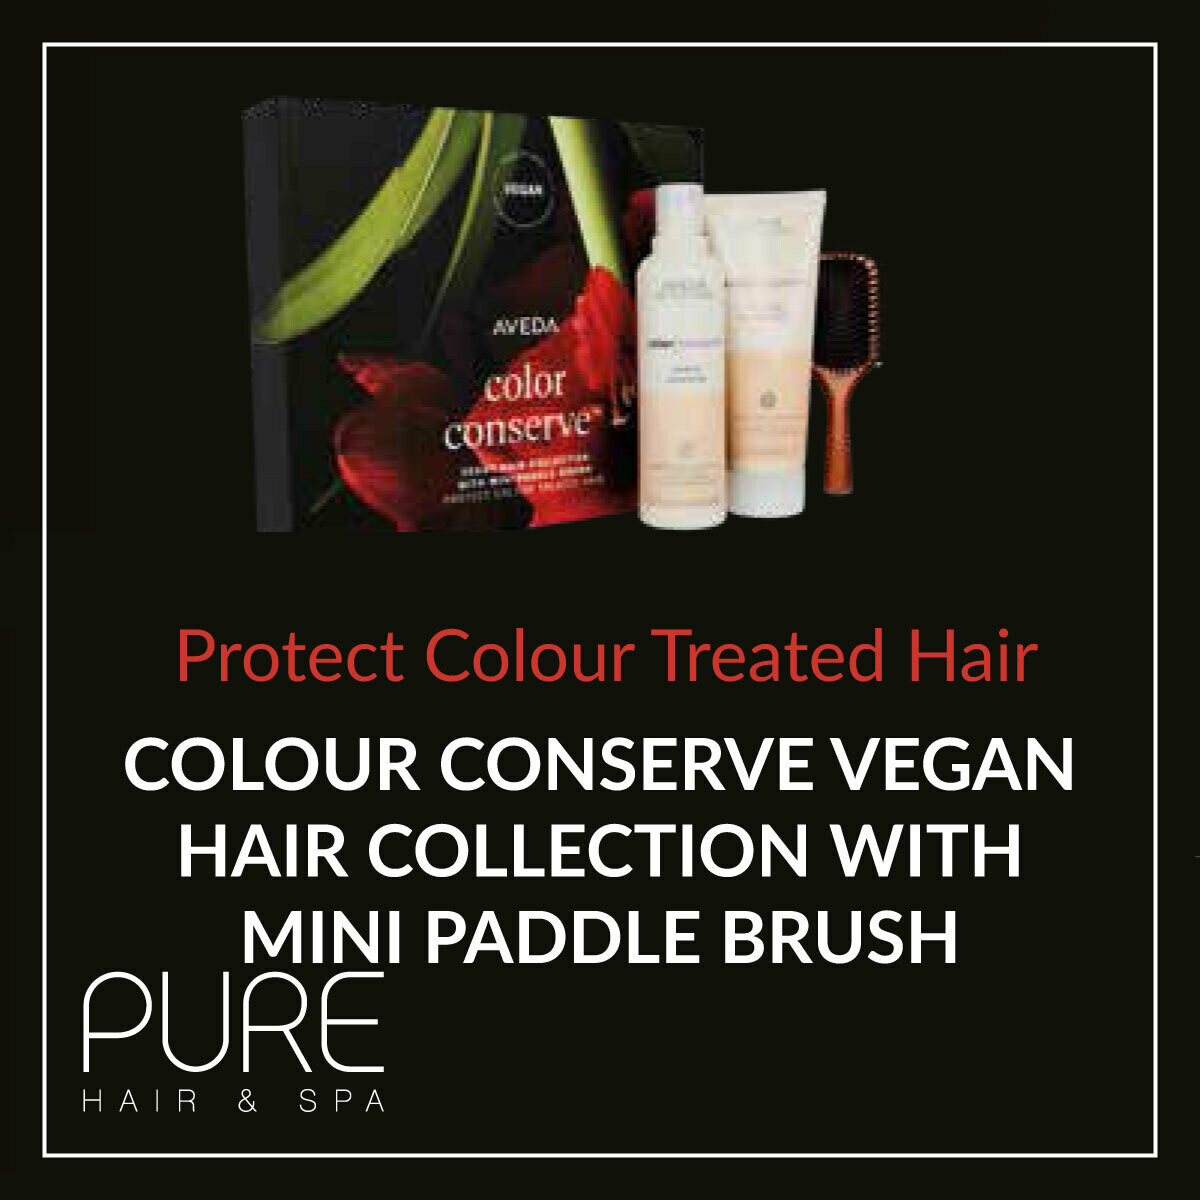 Aveda Colour Conserve Hair Care Gift Set.